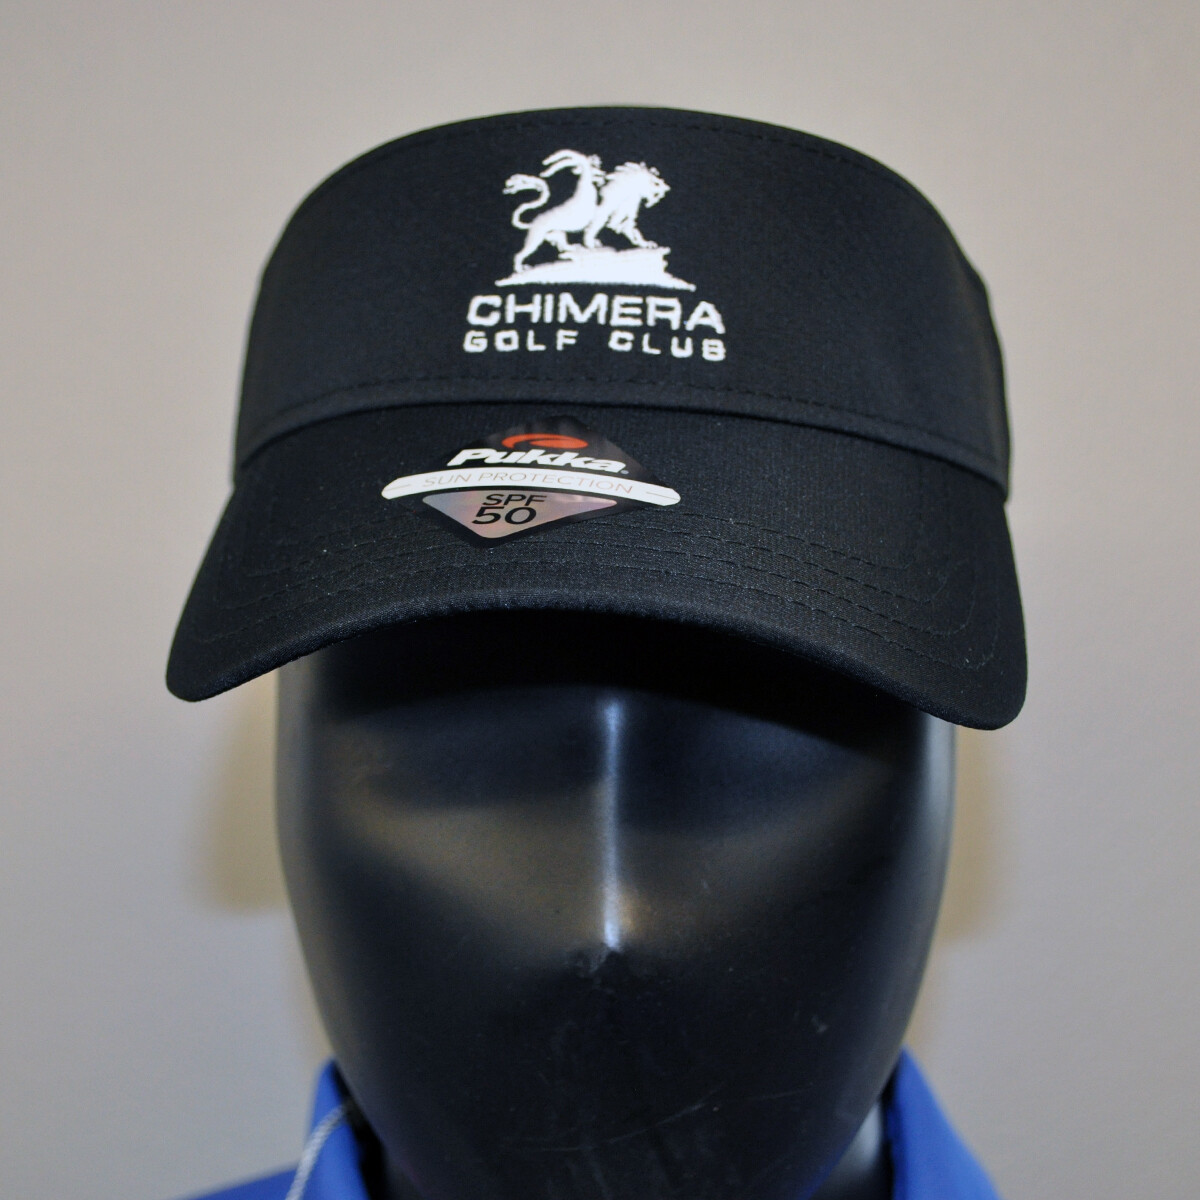 Men's Golf Visor - OSFA Black/White